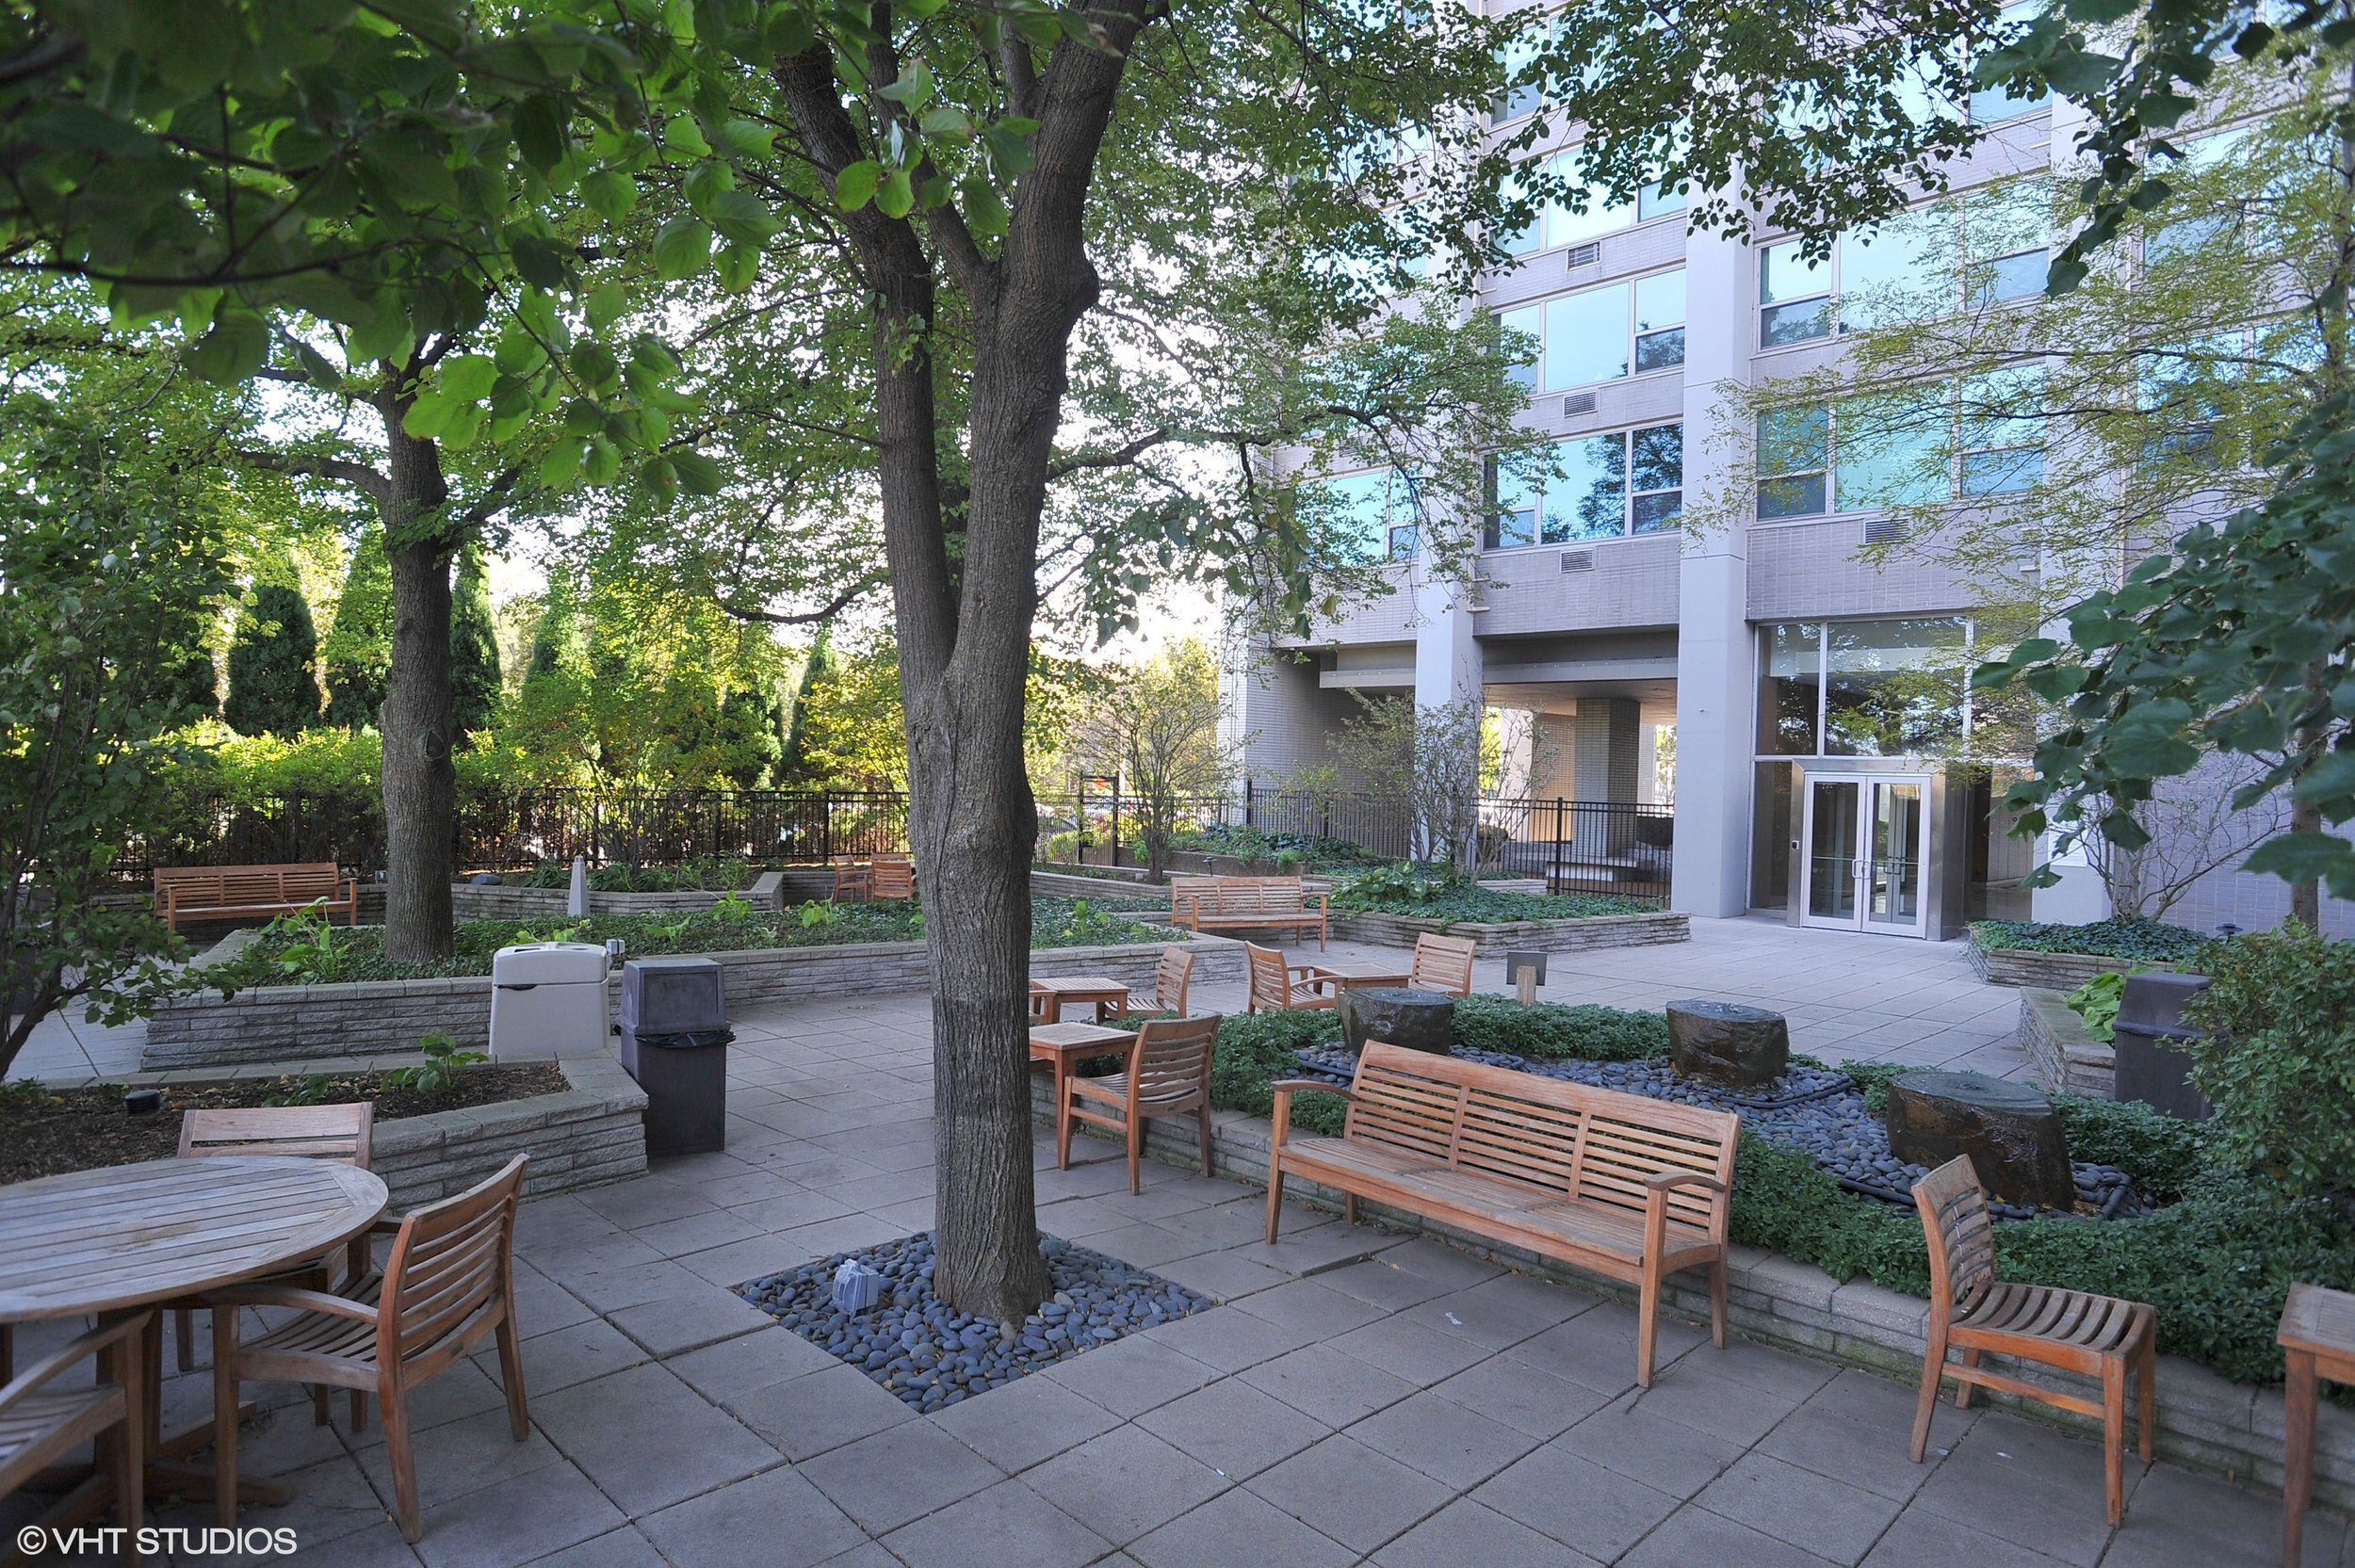 13_3600NLakeShoreDr_Unit724_175_Courtyard_HiRes.jpg